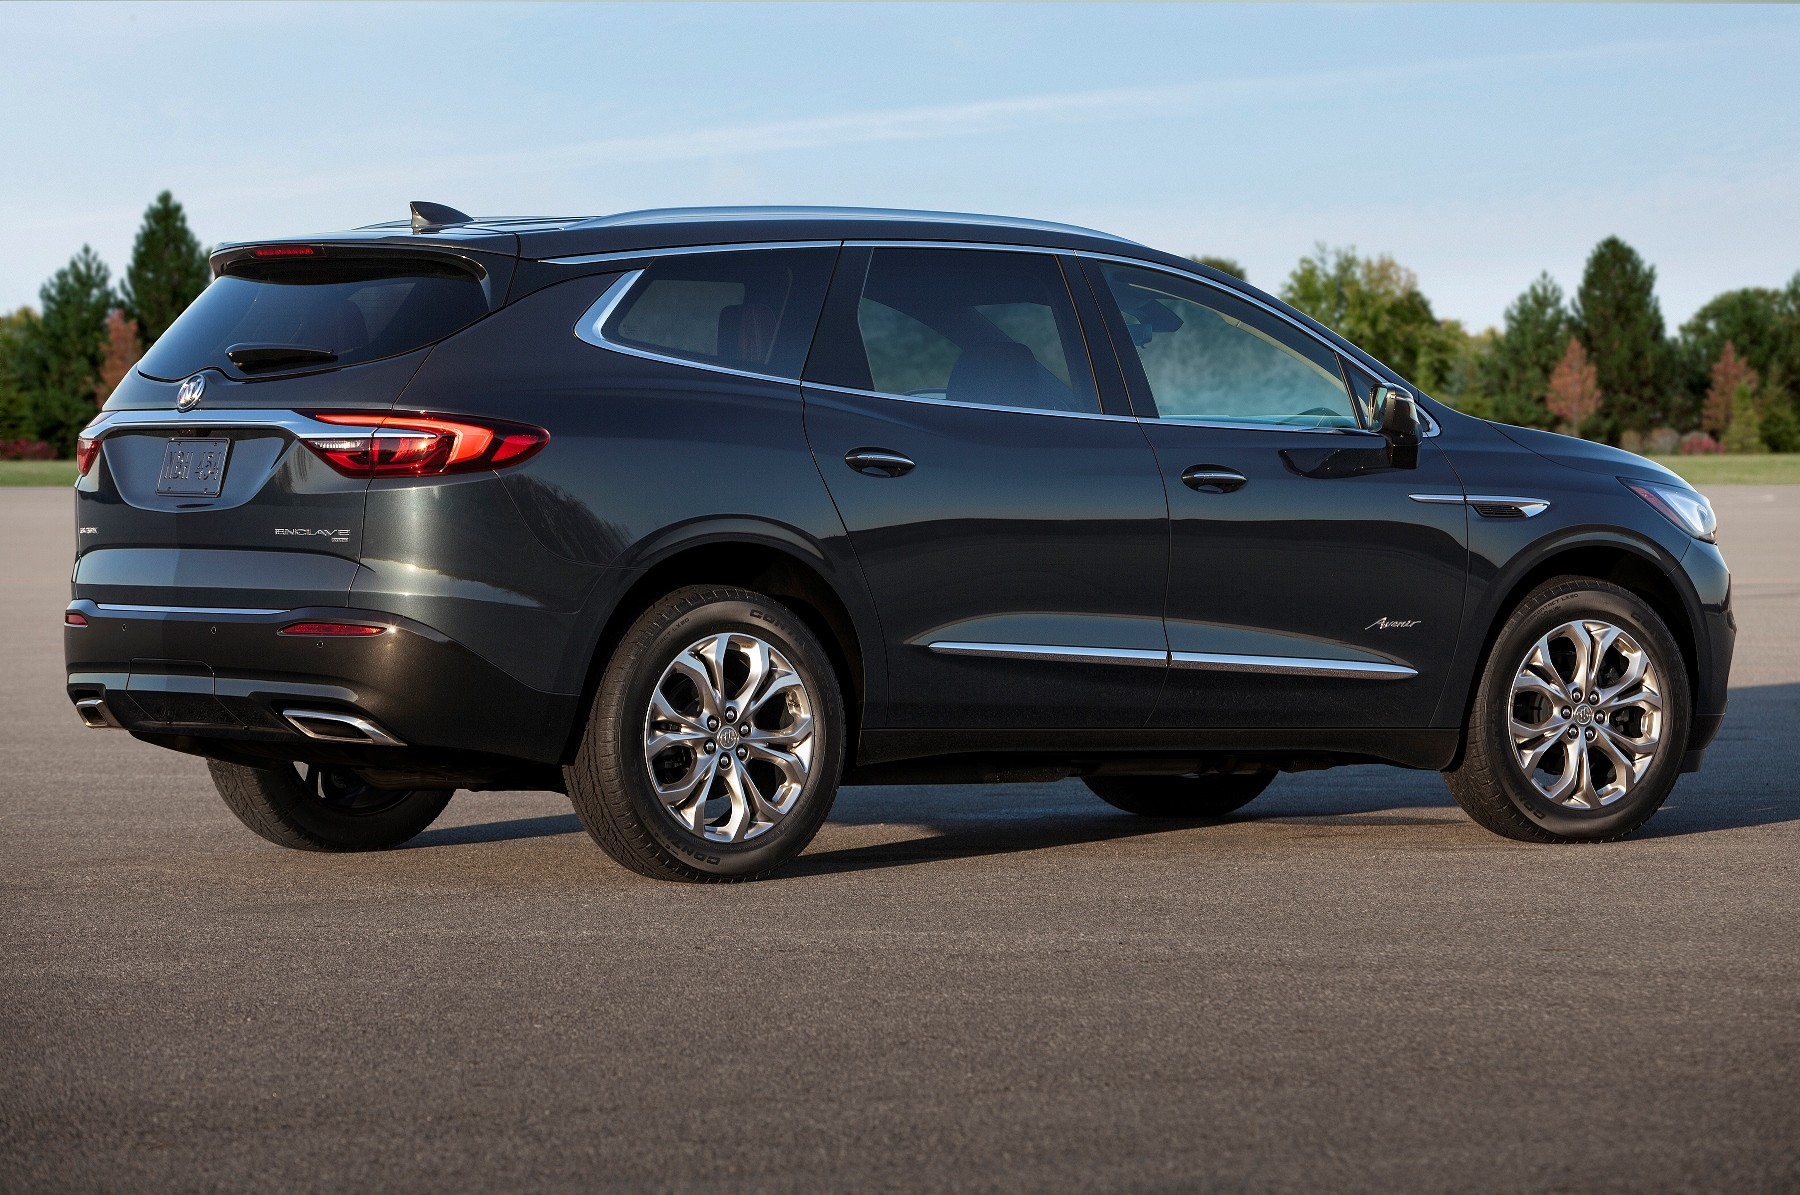 asp specials pioneers alt leasebusters en s takeover buick research review enclave test canada teaser road premium lease awd